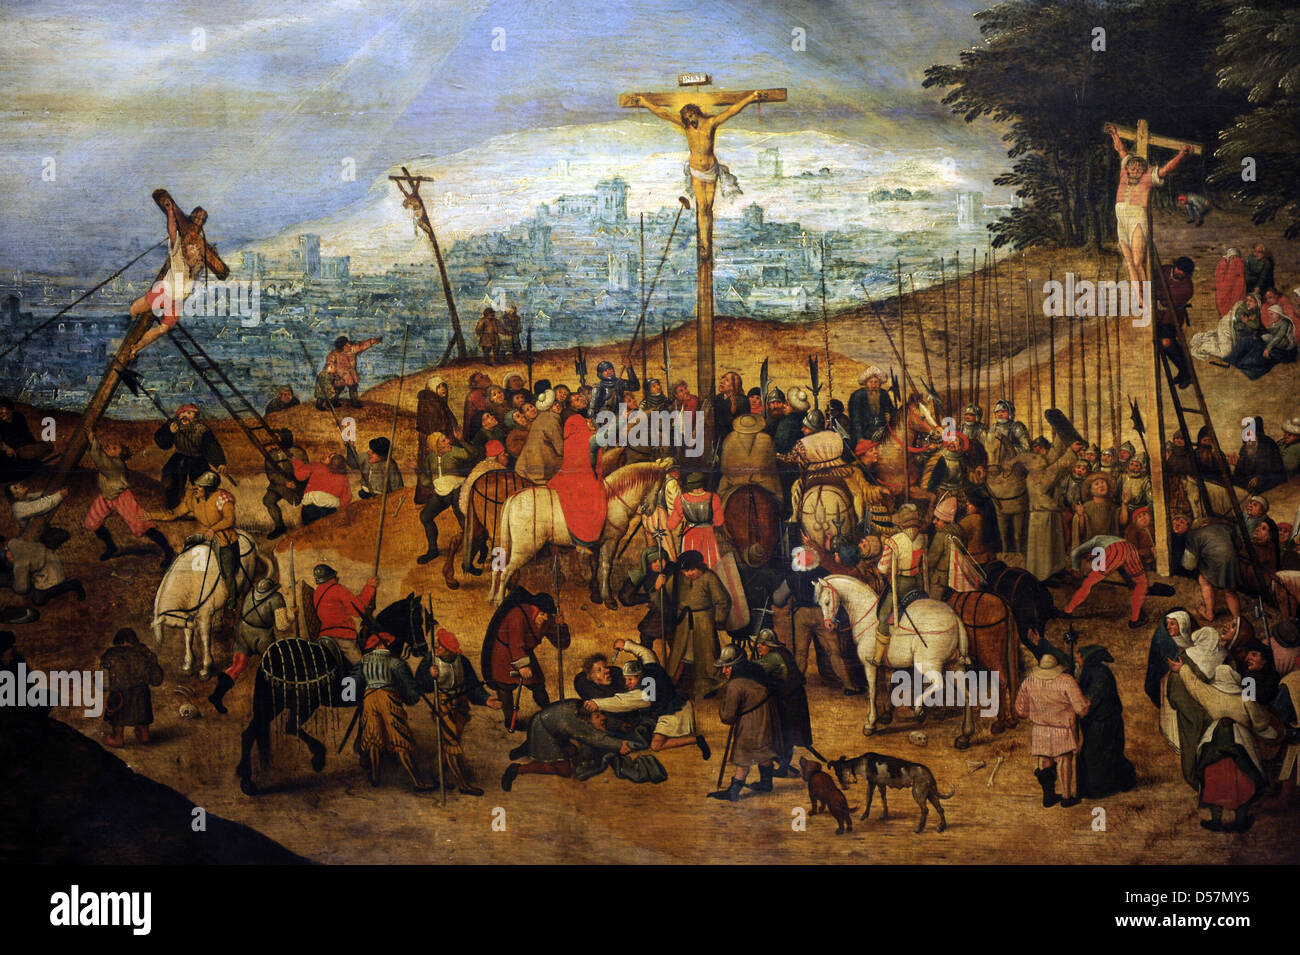 Pieter Brueghel the Younger (1564-1638). Flemish painter. The Crucifixion or The Calvary, 1617. Museum of Fine Arts. Stock Photo